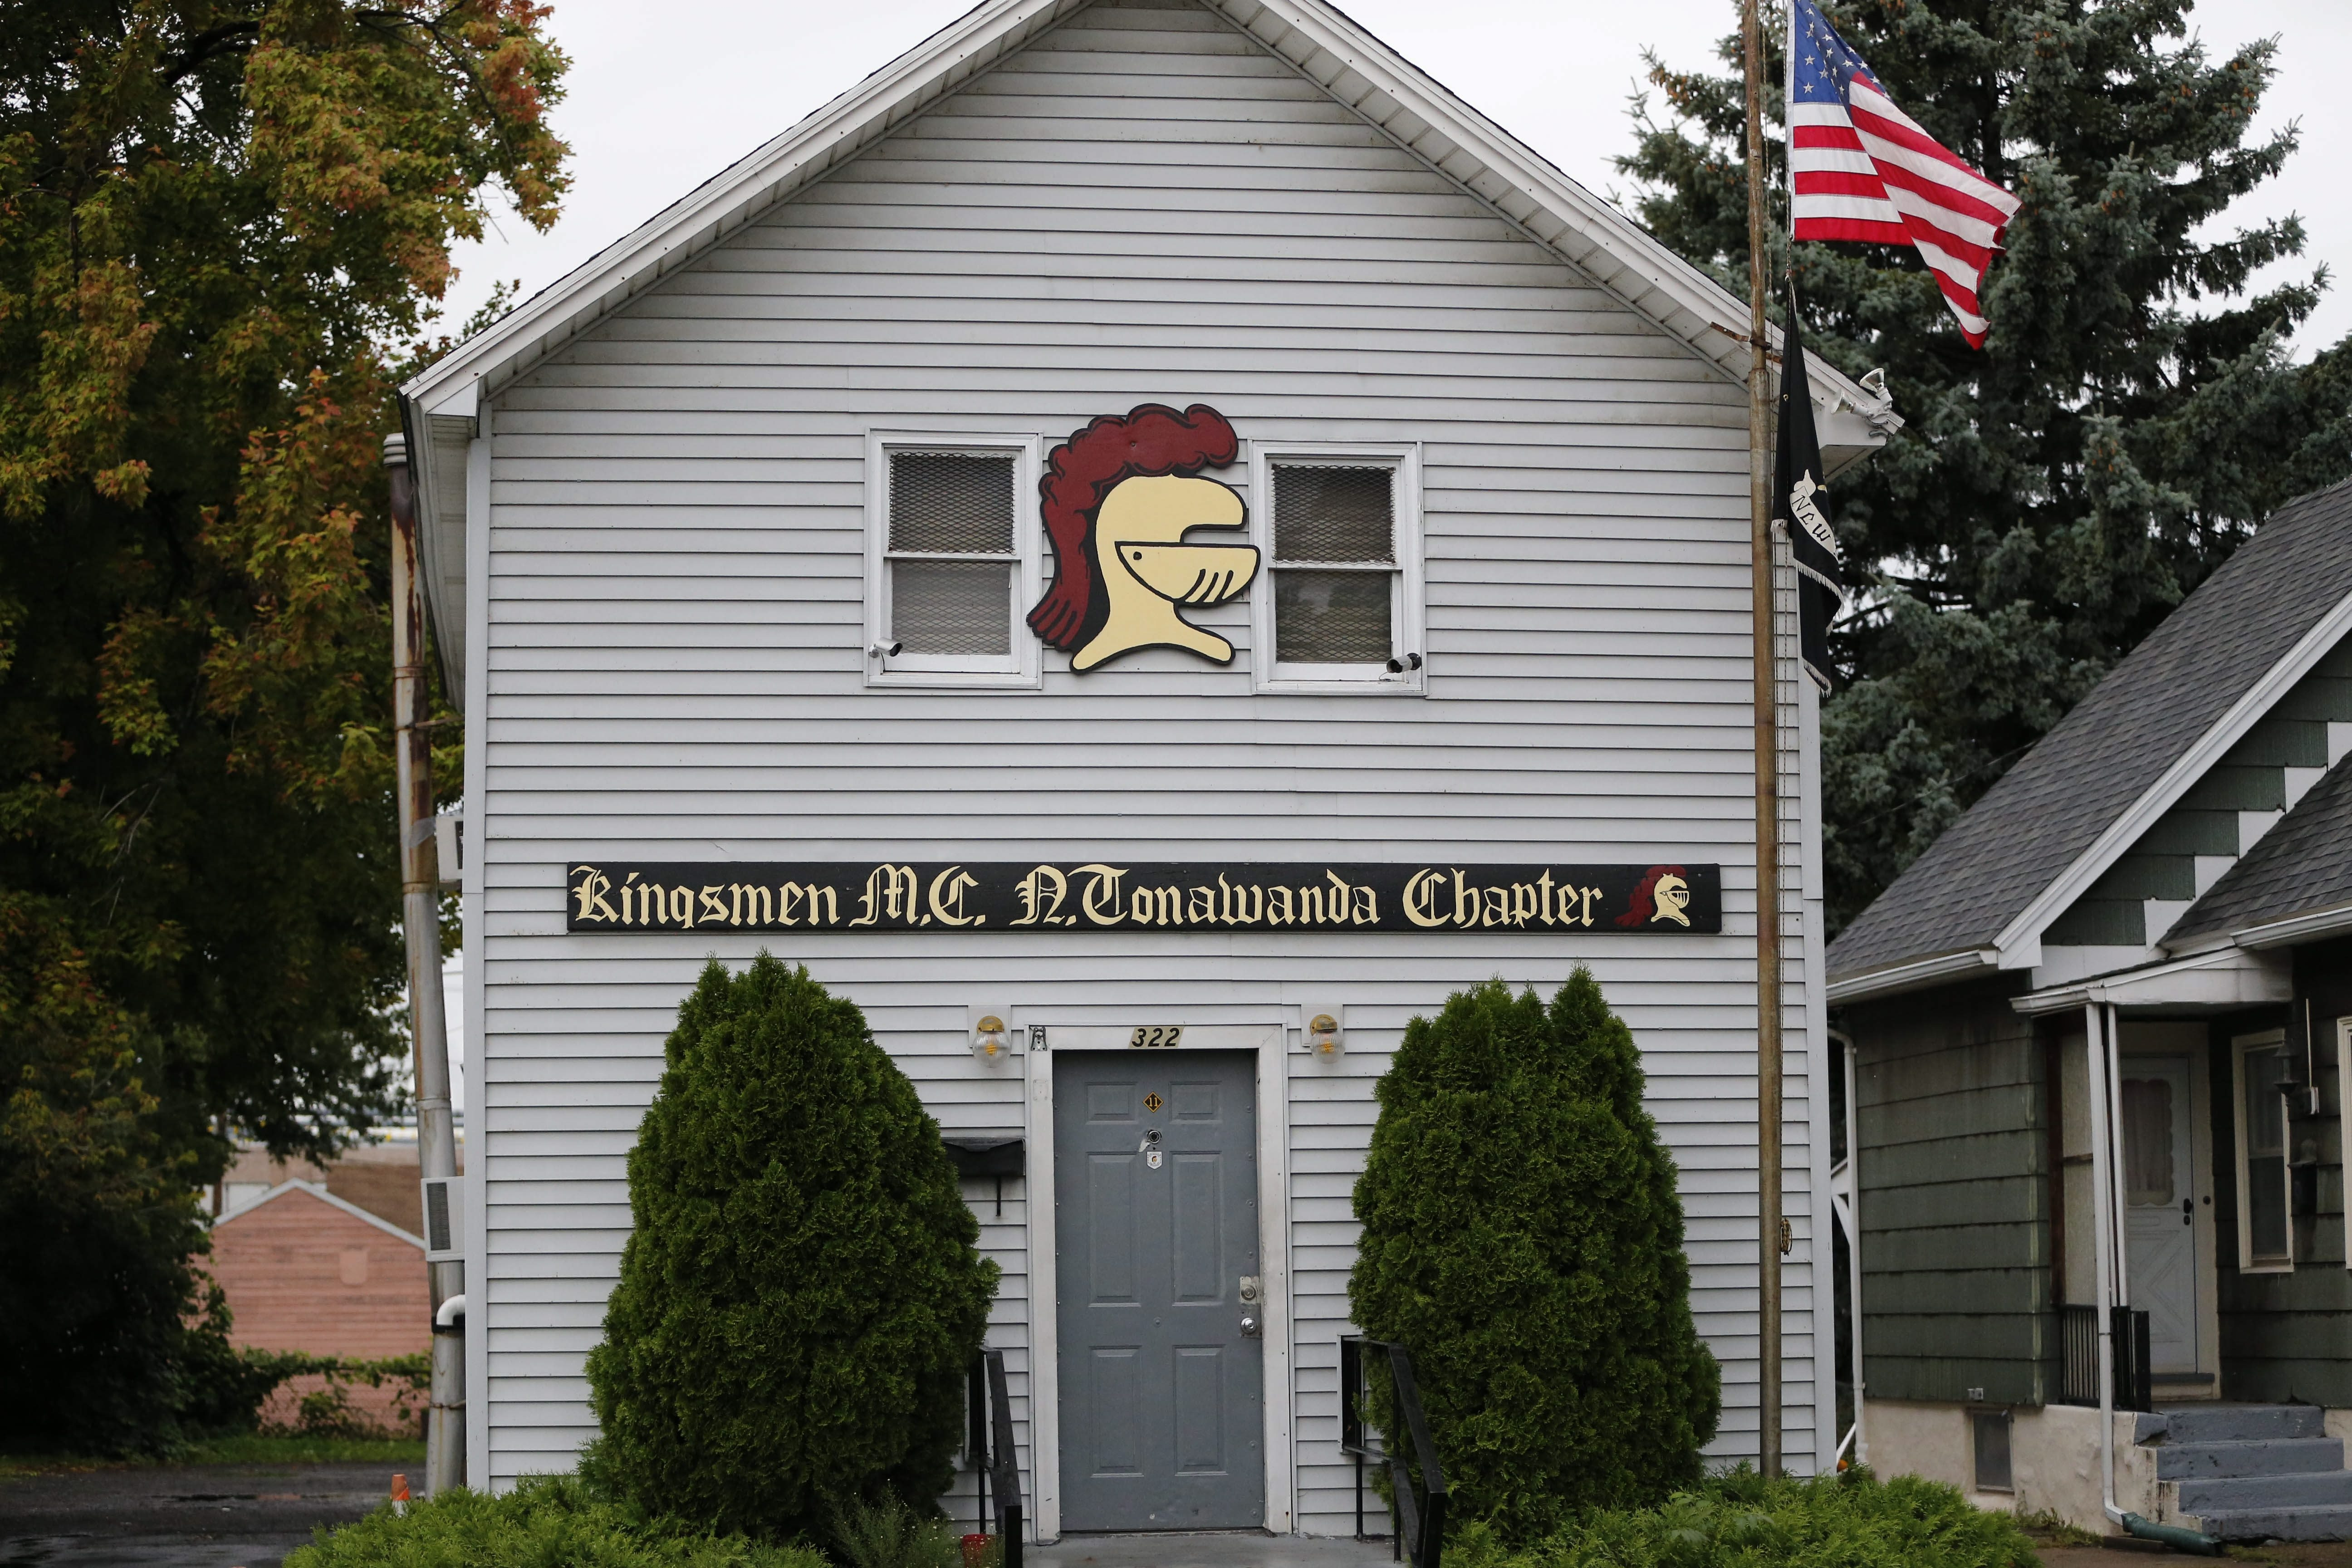 The Kingsmen Motorcycle Club on Oliver Street in North Tonawanda, where two members were killed in a shooting early Sept. 6, 2014.  (Derek Gee/Buffalo News)